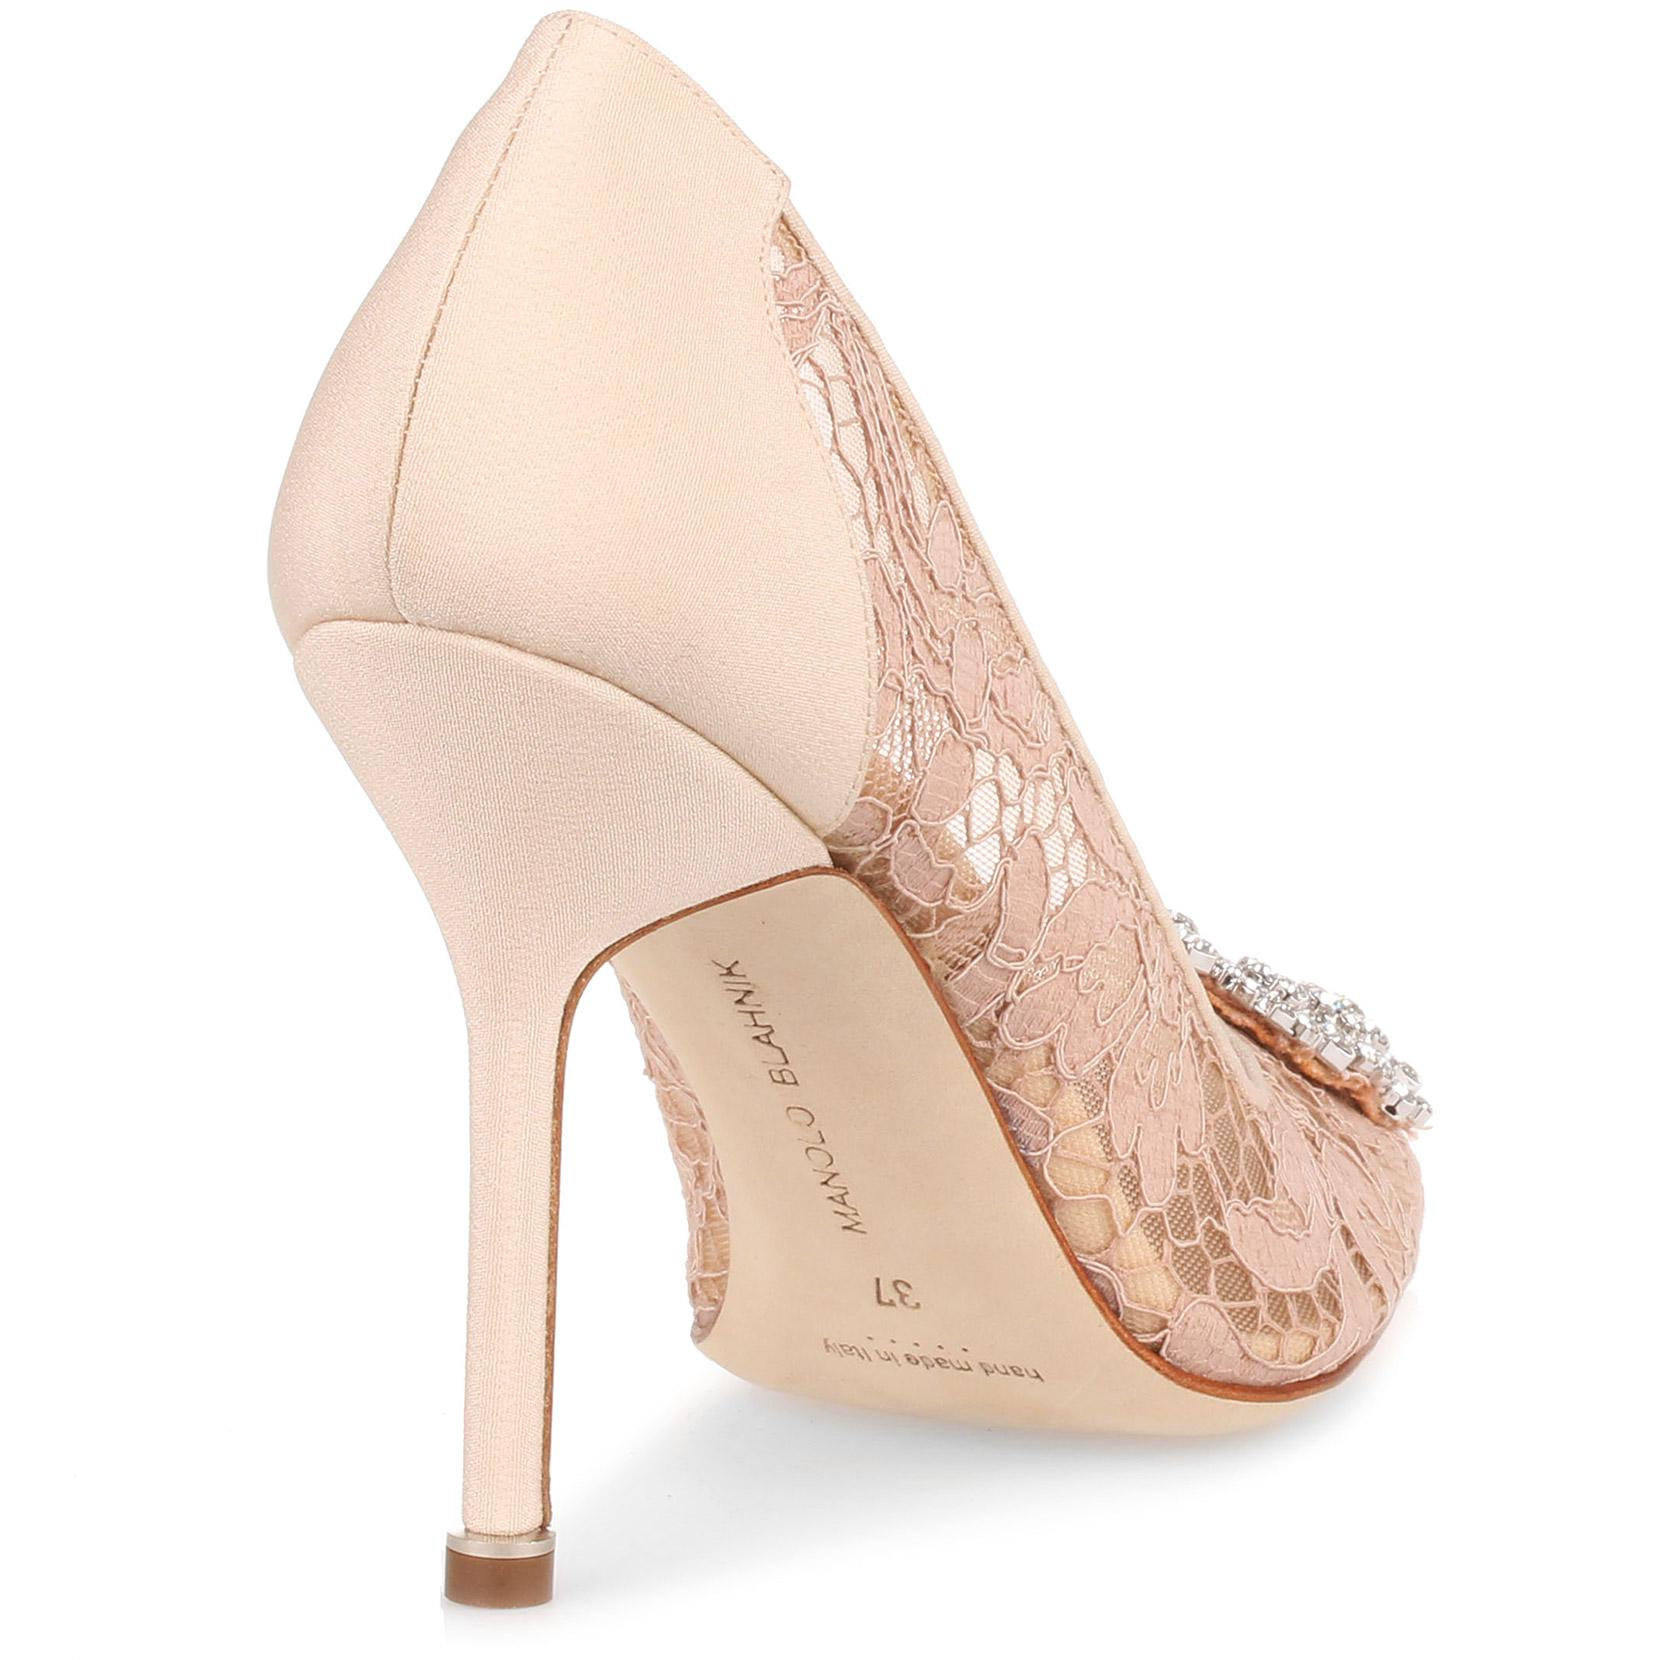 Hangisi 105 beige lace pump Manolo Blahnik For Nice For Sale Best Seller With Paypal Cheap Online Cheap Sale Pick A Best Clearance Geniue Stockist 3GaFv5mNmp